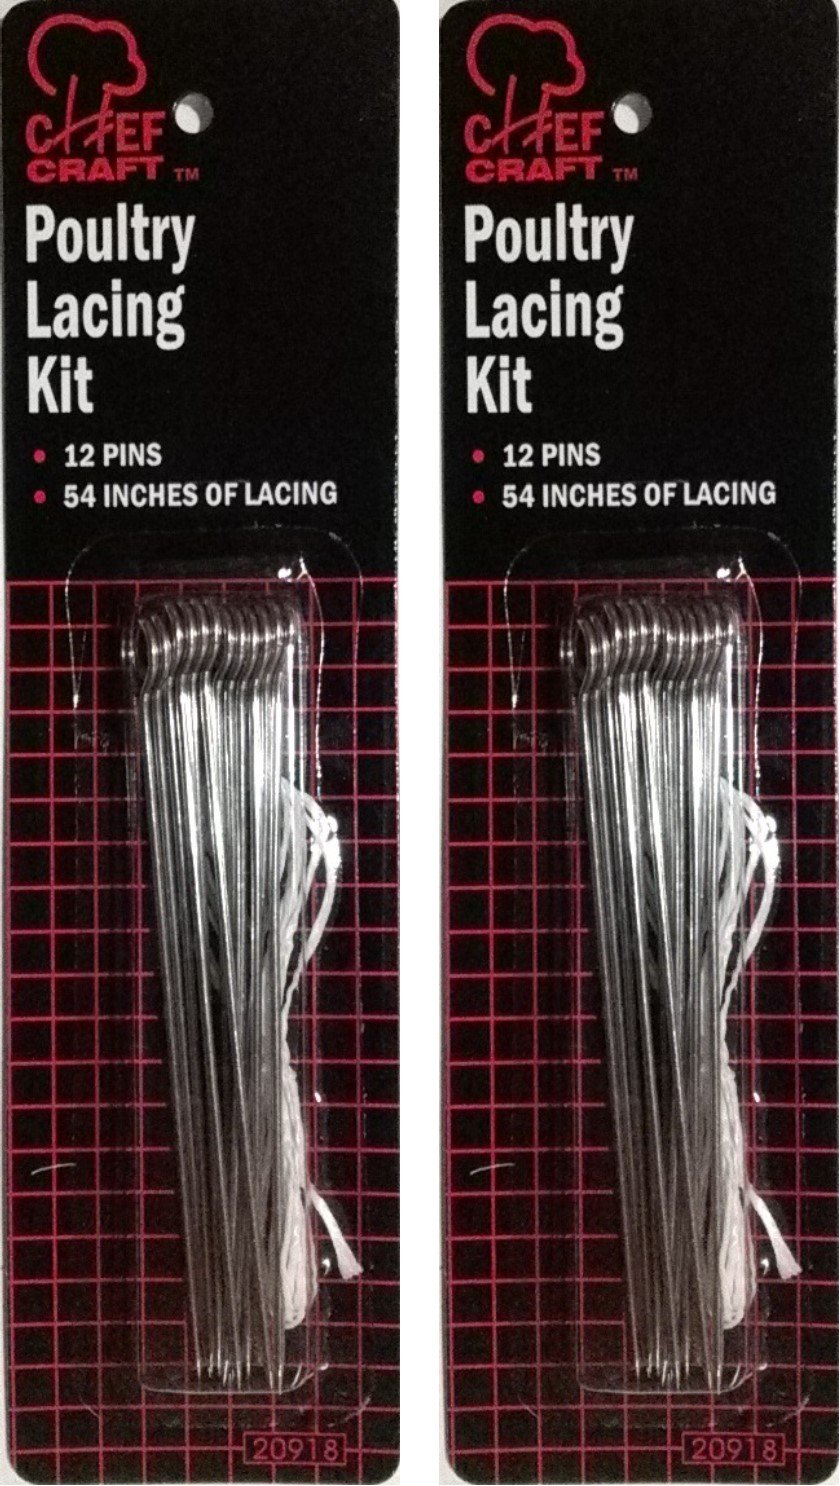 Chef Craft Poultry Lacing Kit (2 Packs) 20918